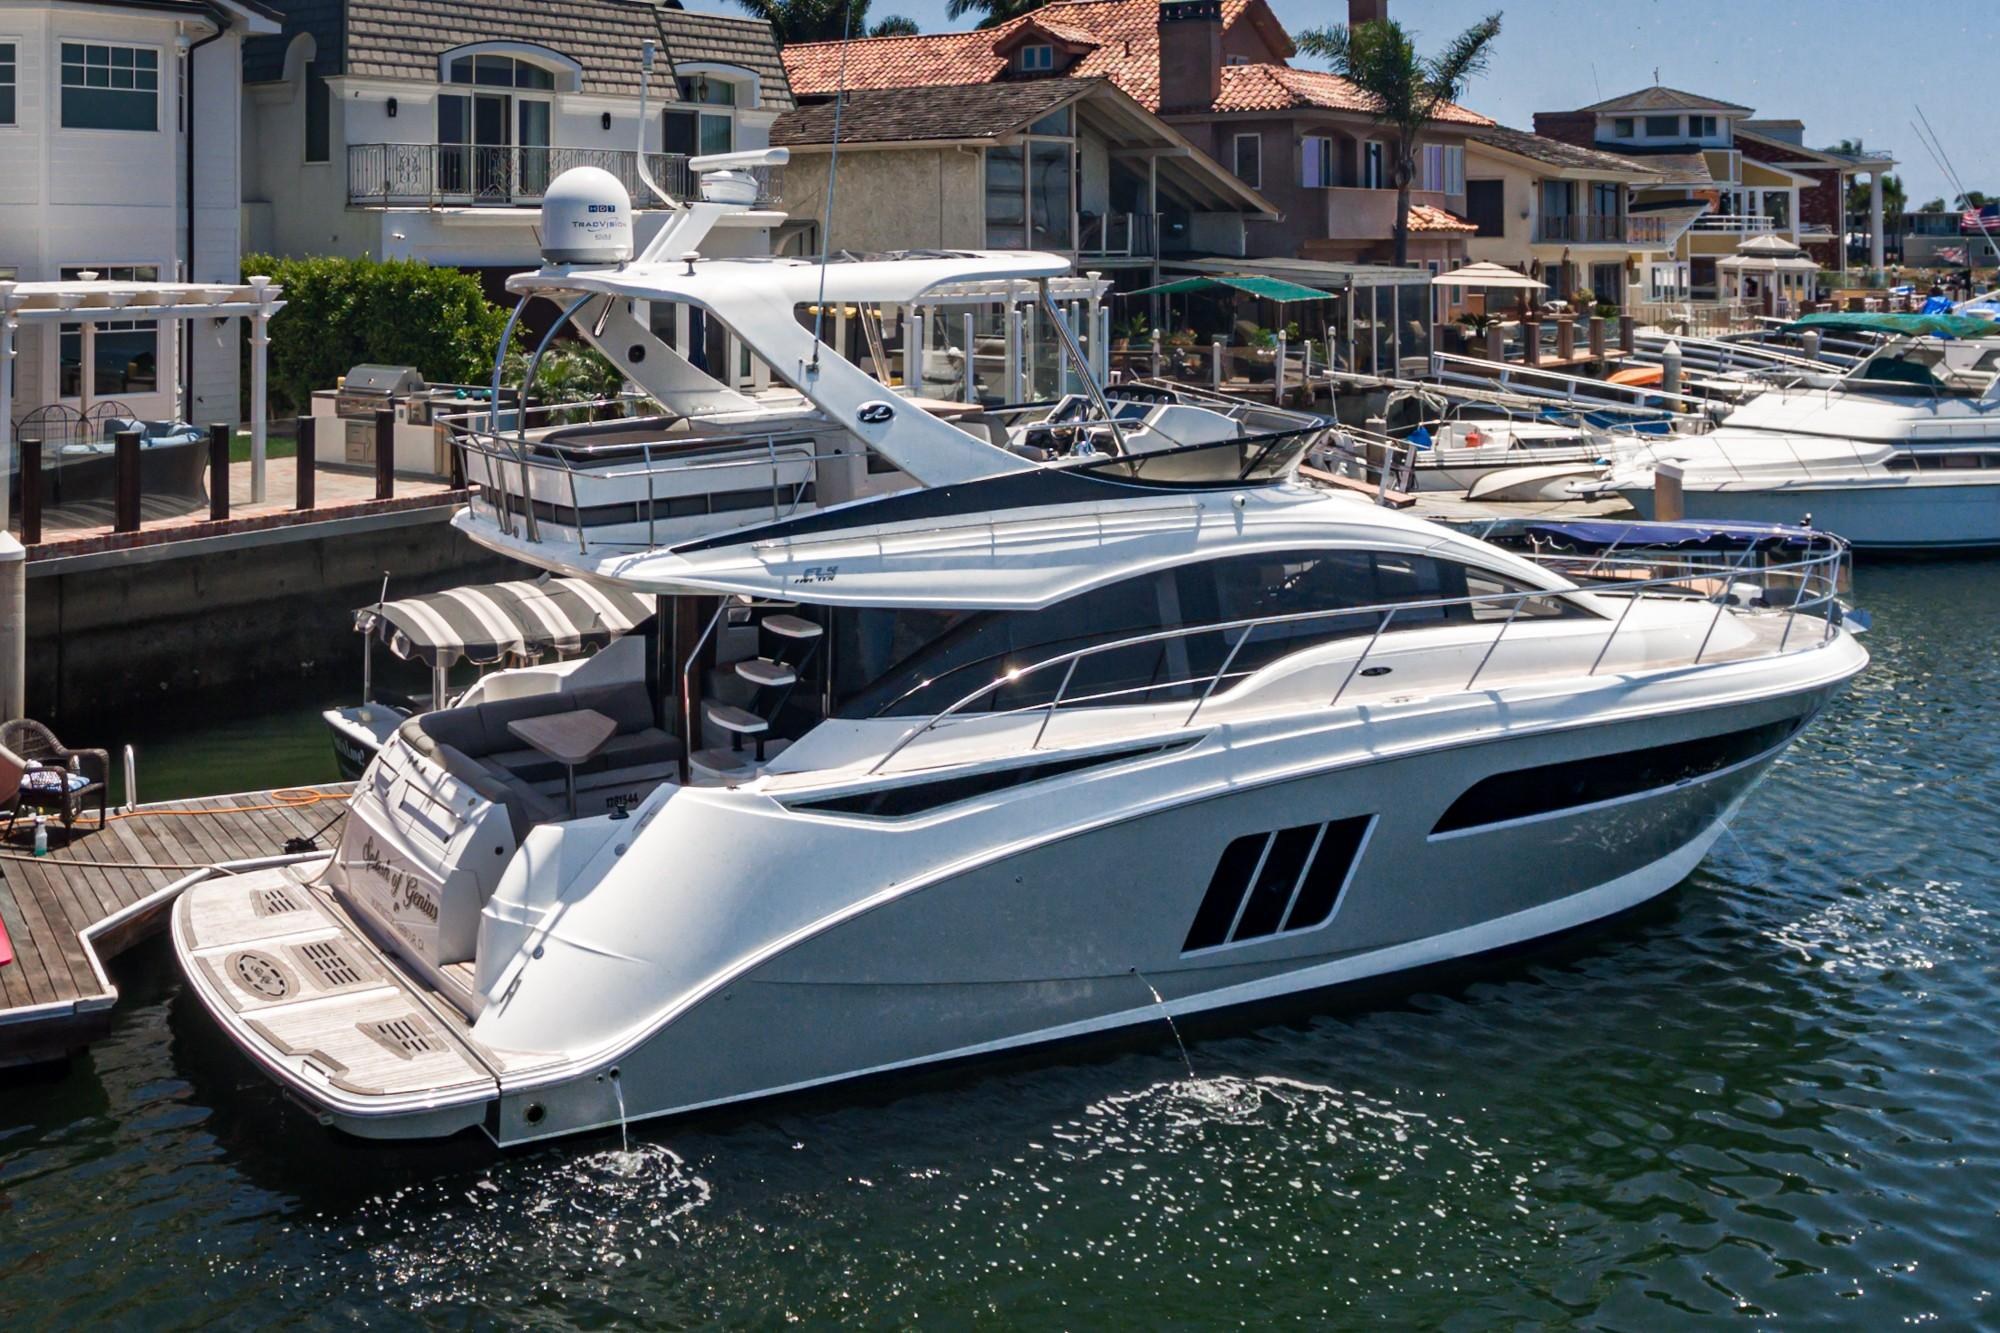 2017 Sea Ray 510 Fly #TB8898DM inventory image at Sun Country Coastal in Newport Beach